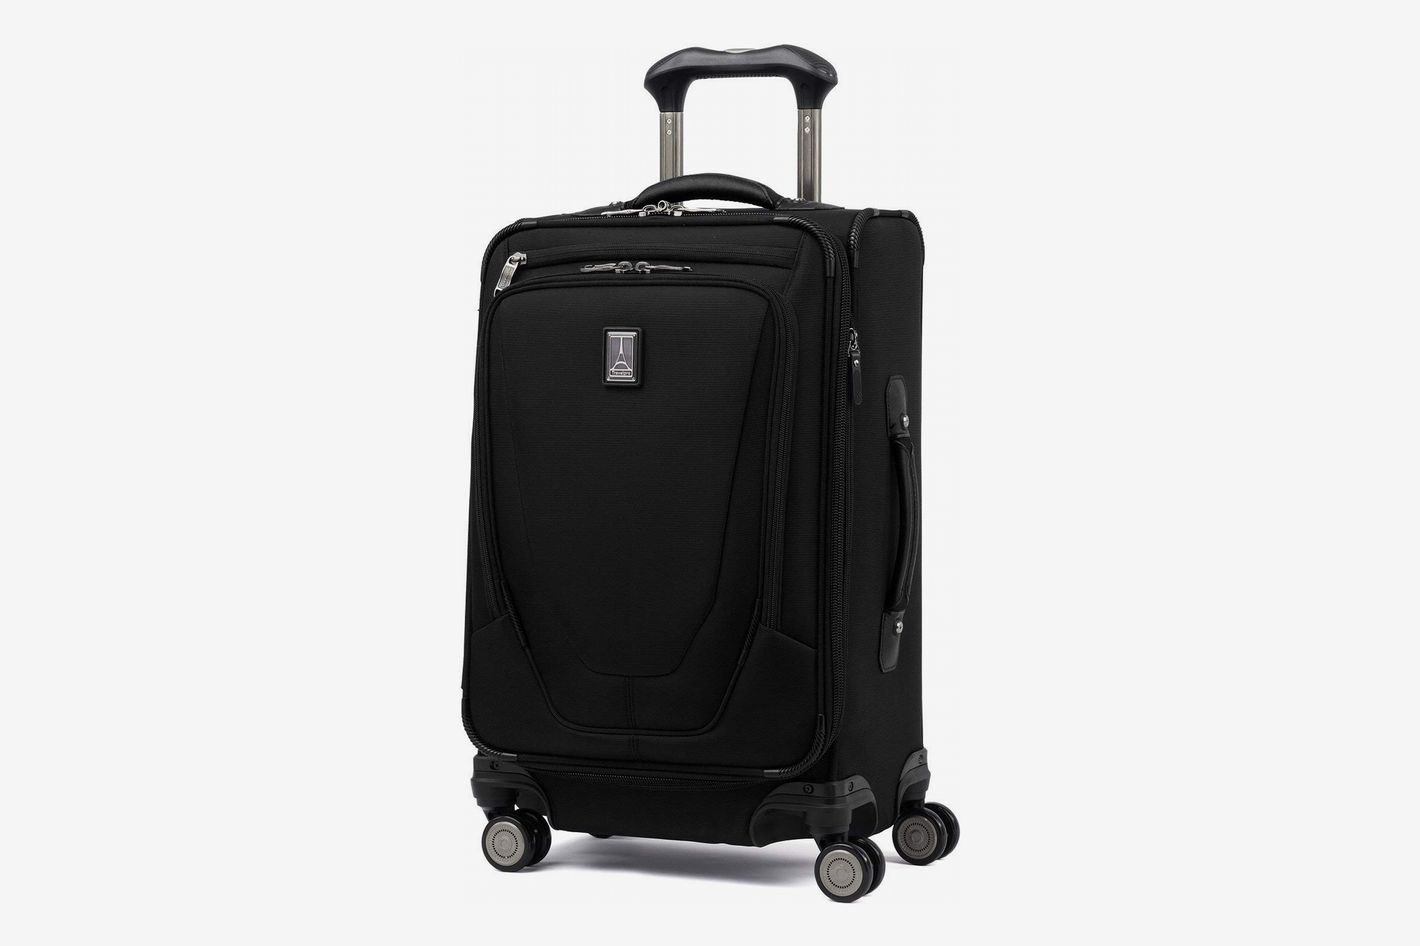 """Travelpro Luggage Crew 11 21"""" Carry-on Expandable Spinner with Suiter and USB Port"""